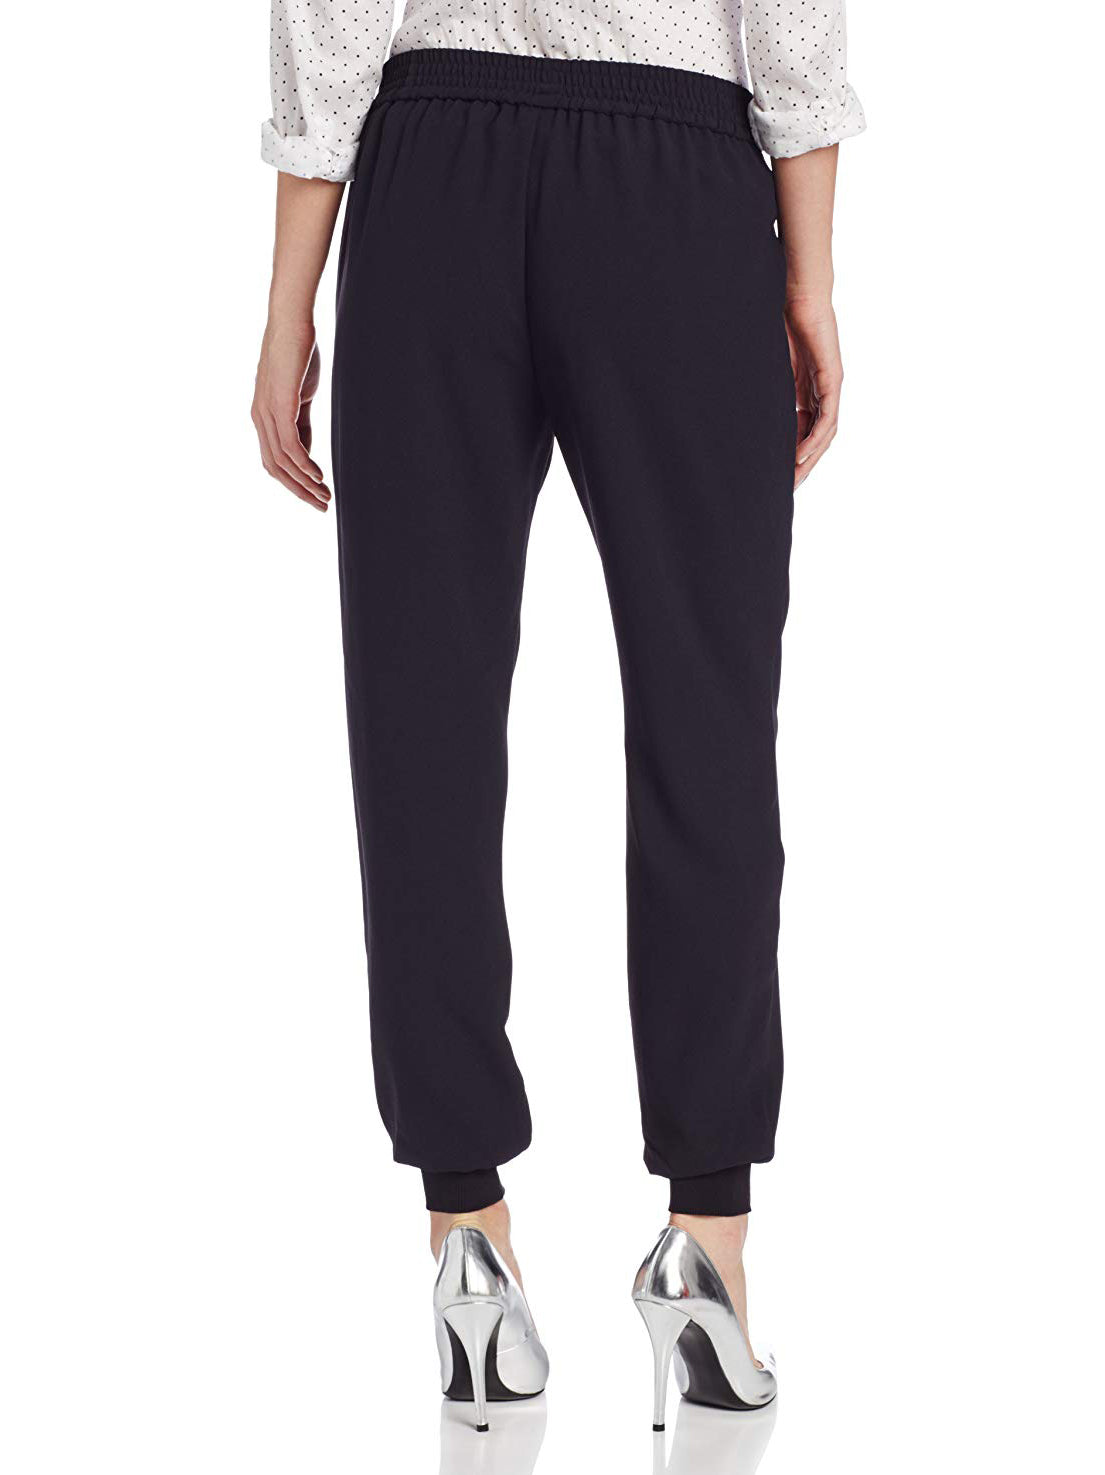 TILDEN | Joie Mariner Pants